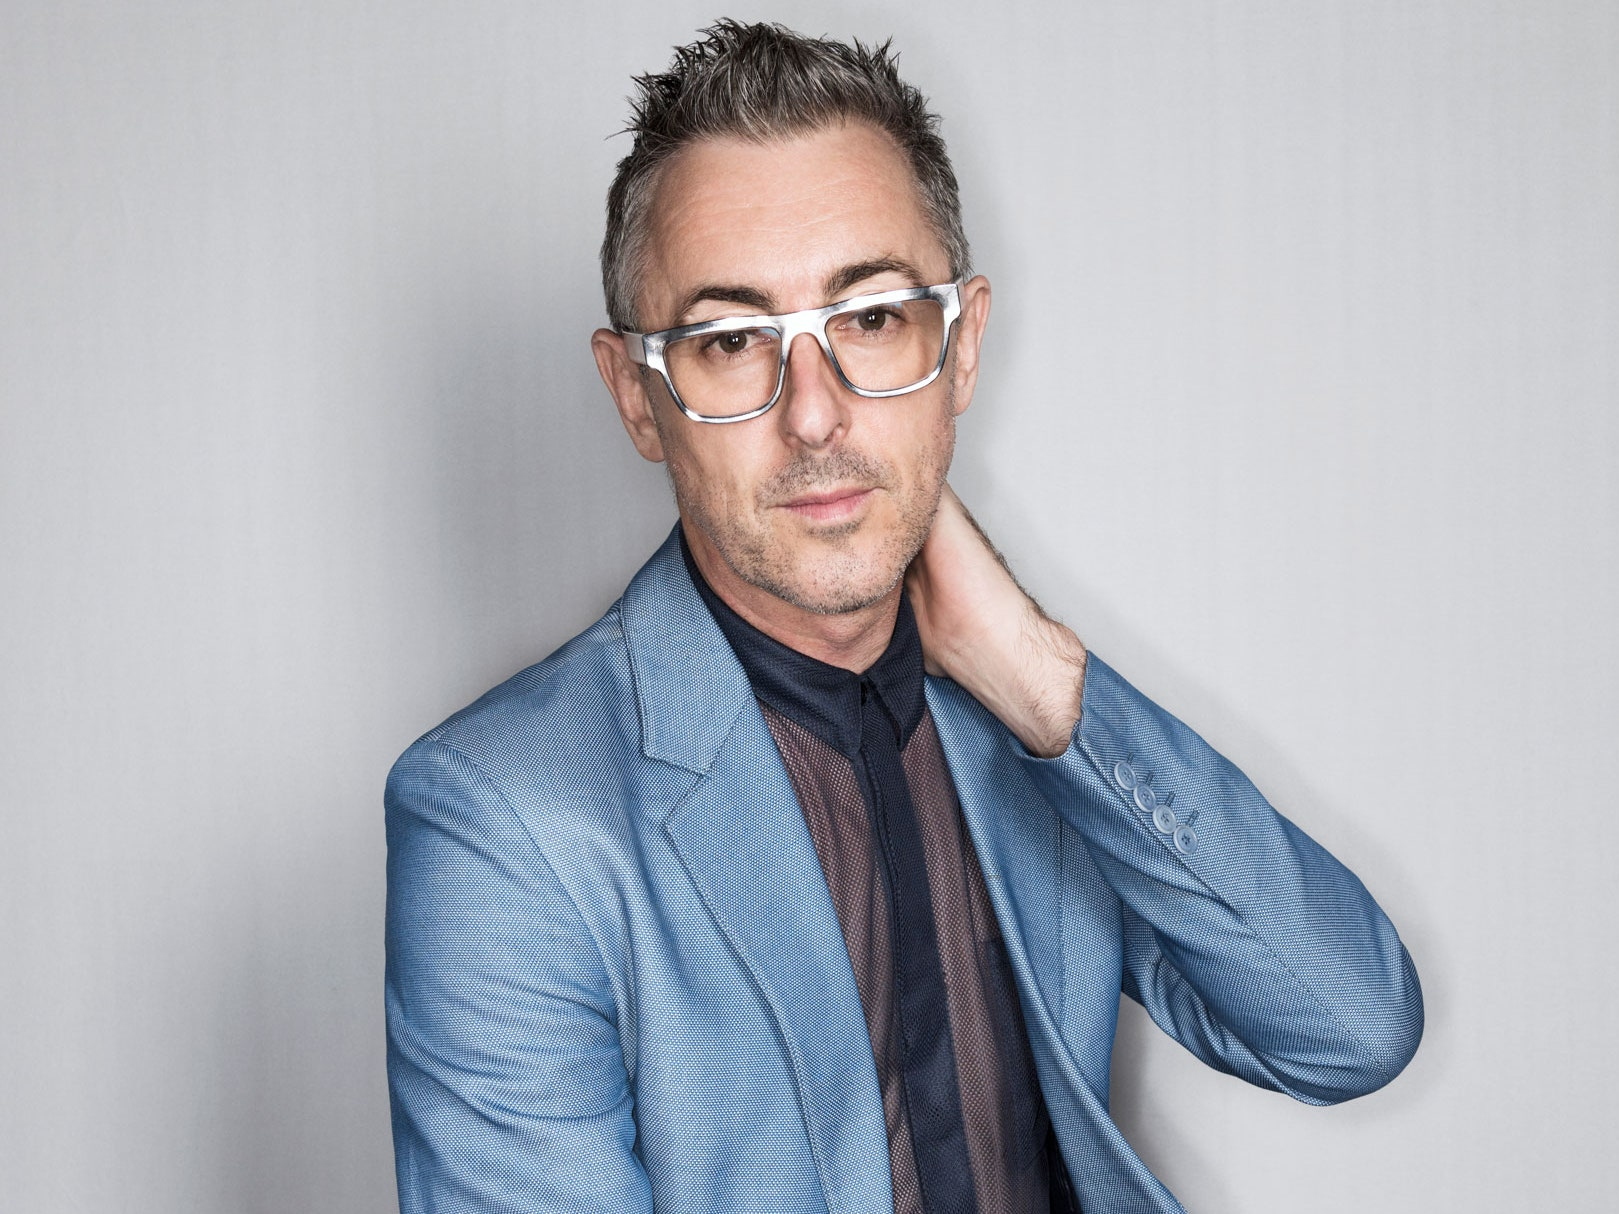 Alan Cumming Phone number, Email Id, Fanmail, Instagram, Tiktok, and Contact Details